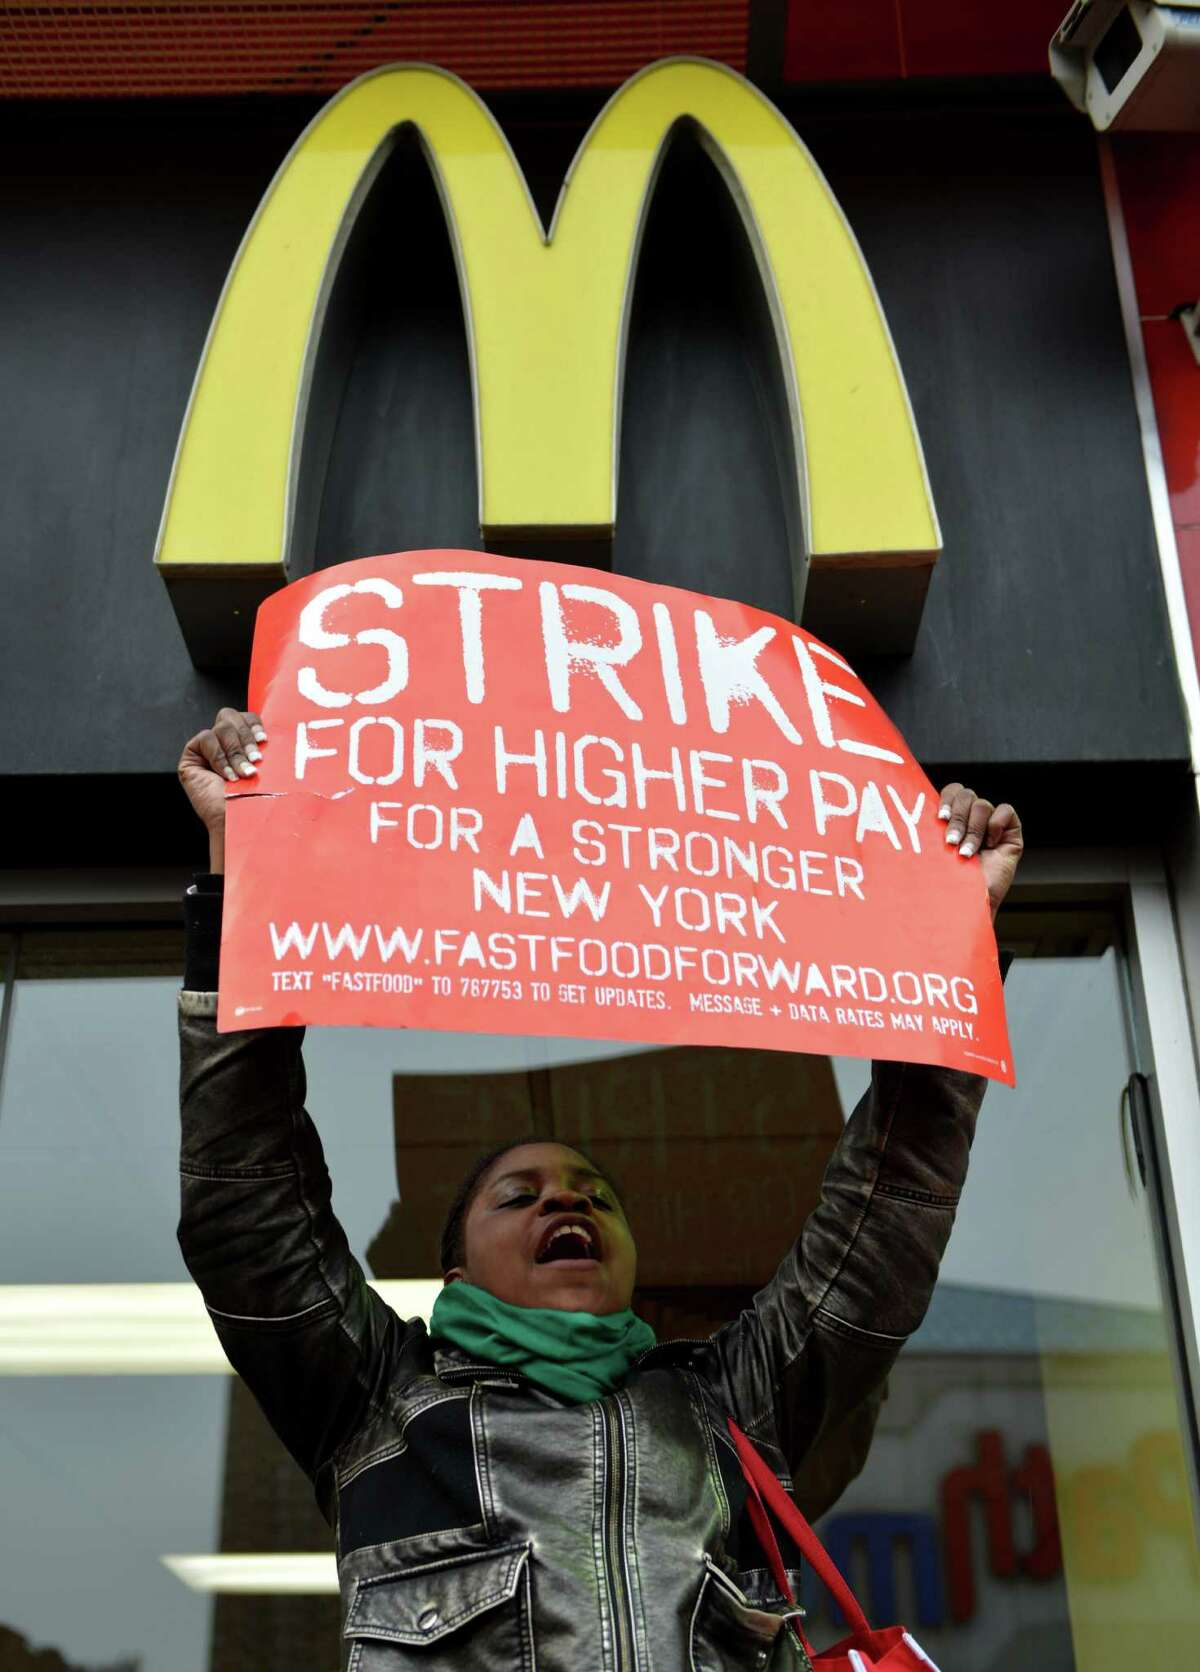 Tara Waring carries a sign in front of a McDonald's on East 125th Street and Lexington Avenue in Harlem during a protest by fast food workers and supporters for higher wages April 4, 2013 in New York. AFP PHOTO/Stan HONDASTAN HONDA/AFP/Getty Images